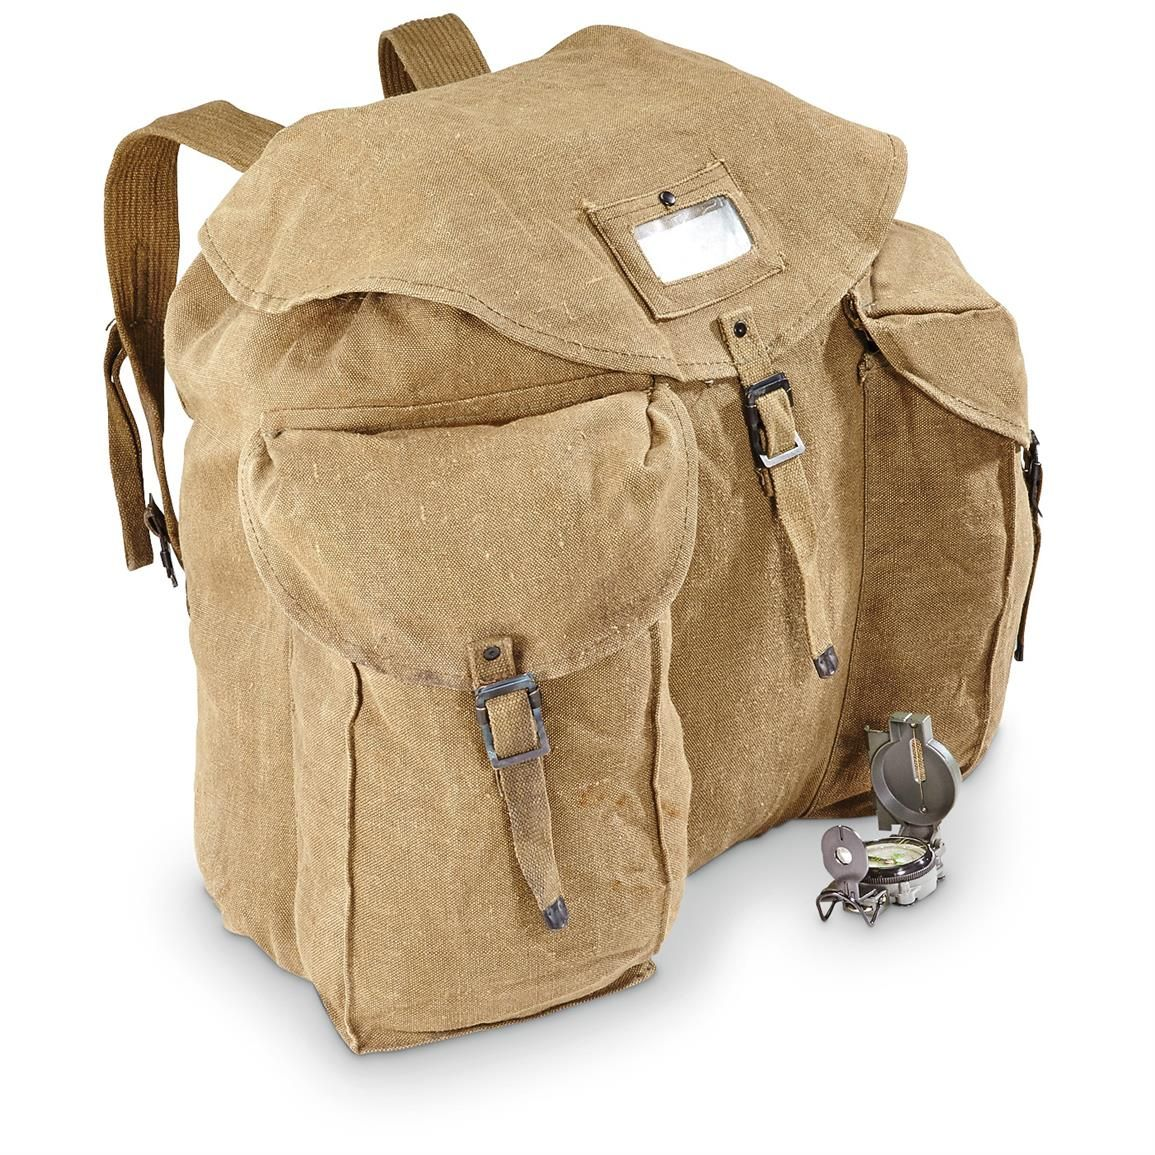 1369f0156 Italian Military Surplus Cotton Canvas XL Rucksack/Backpack With Locking  Chain, Used - Material: Cotton canvas, metal hardware Size: 18